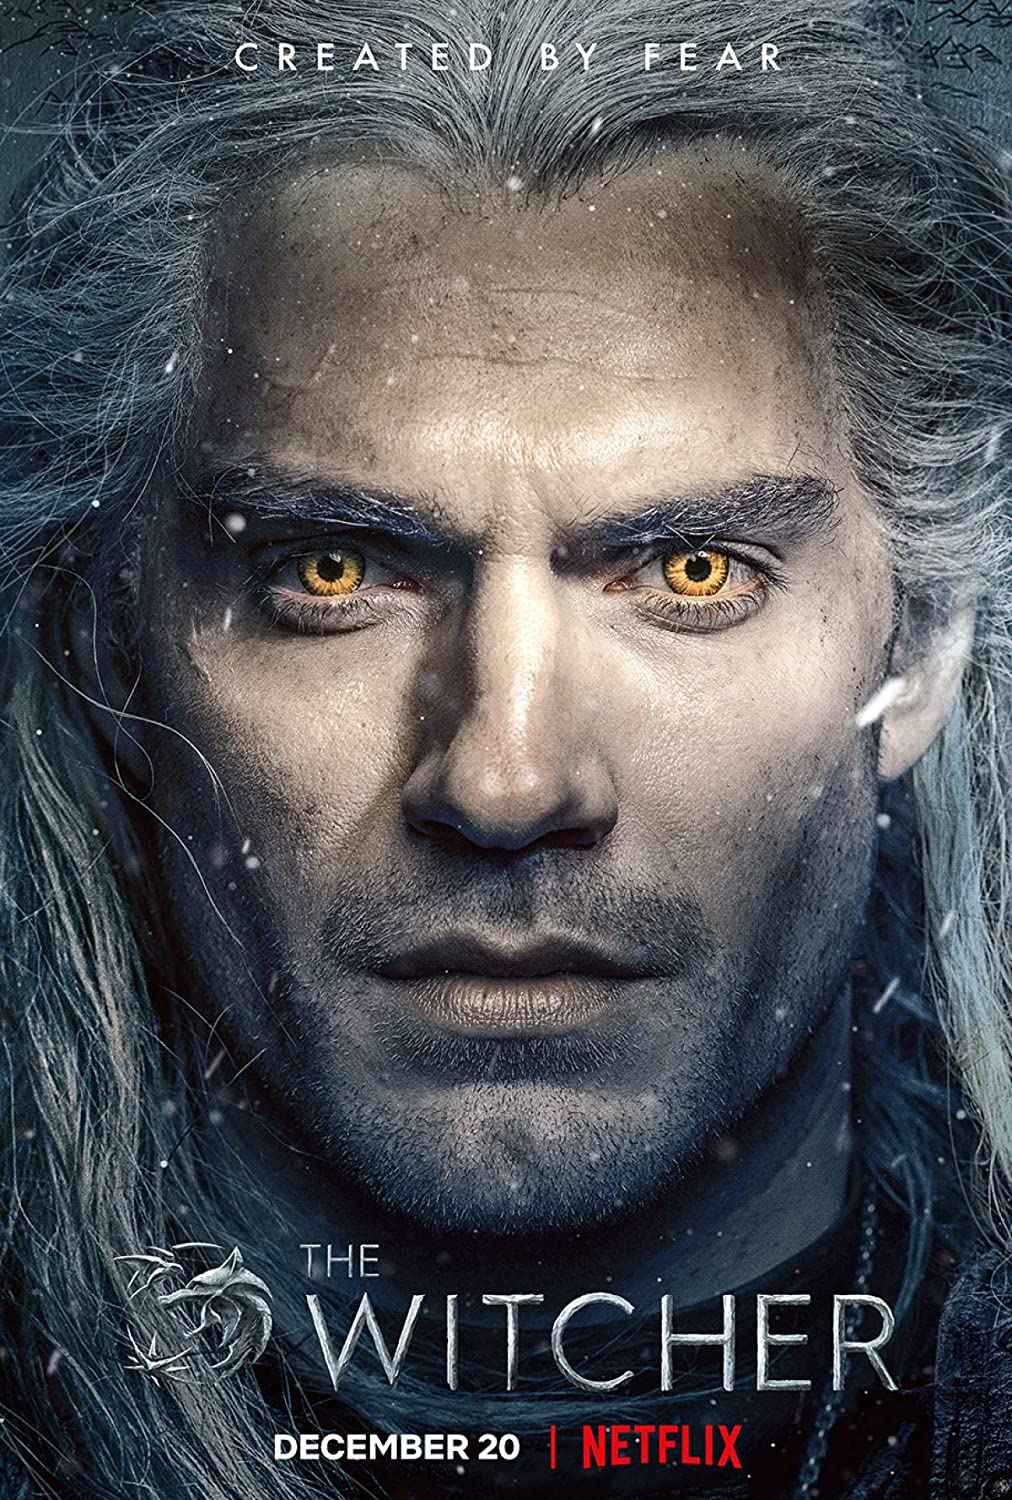 Movie Poster The Witcher 13 in x 19 in Poster Flyer Borderless + Free 1 Tile Magnet